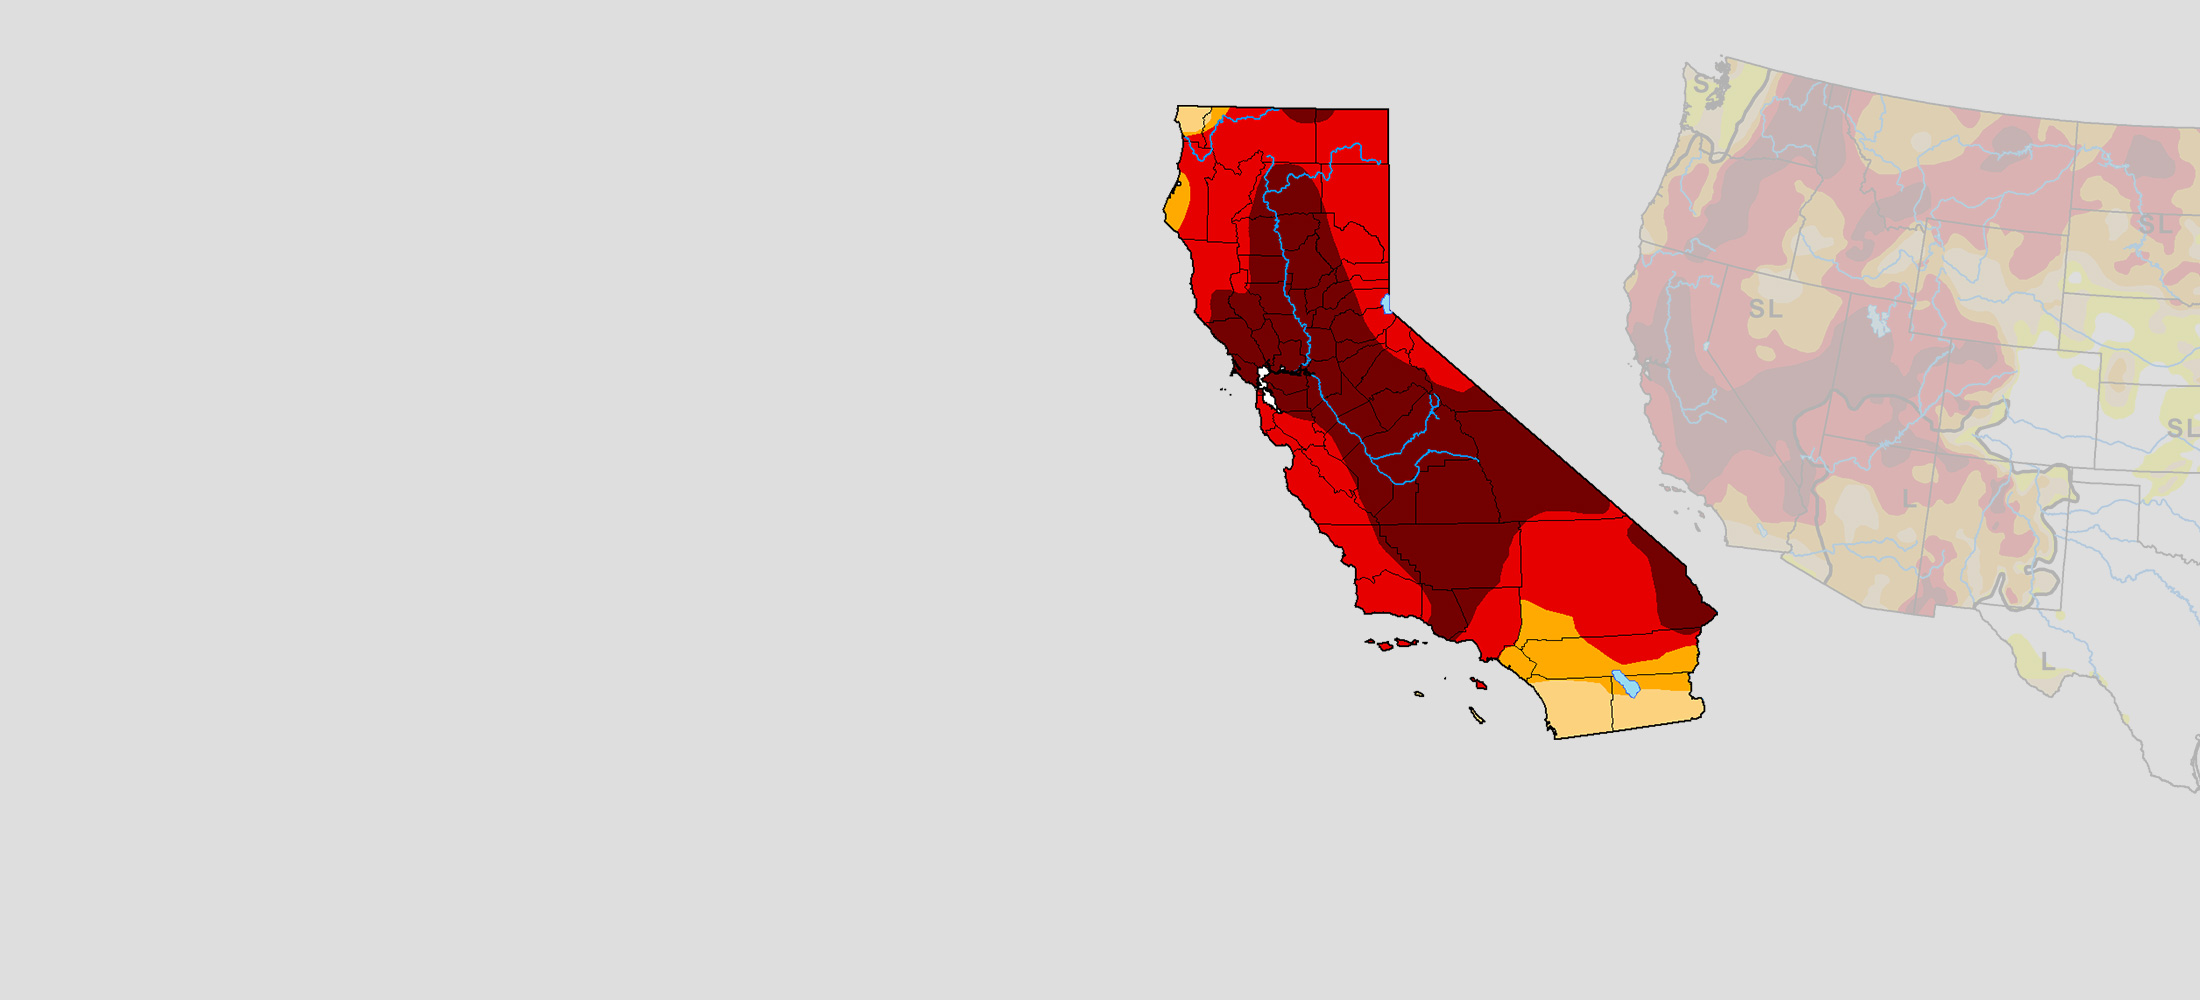 California Drought, droughtmap for August, 2021